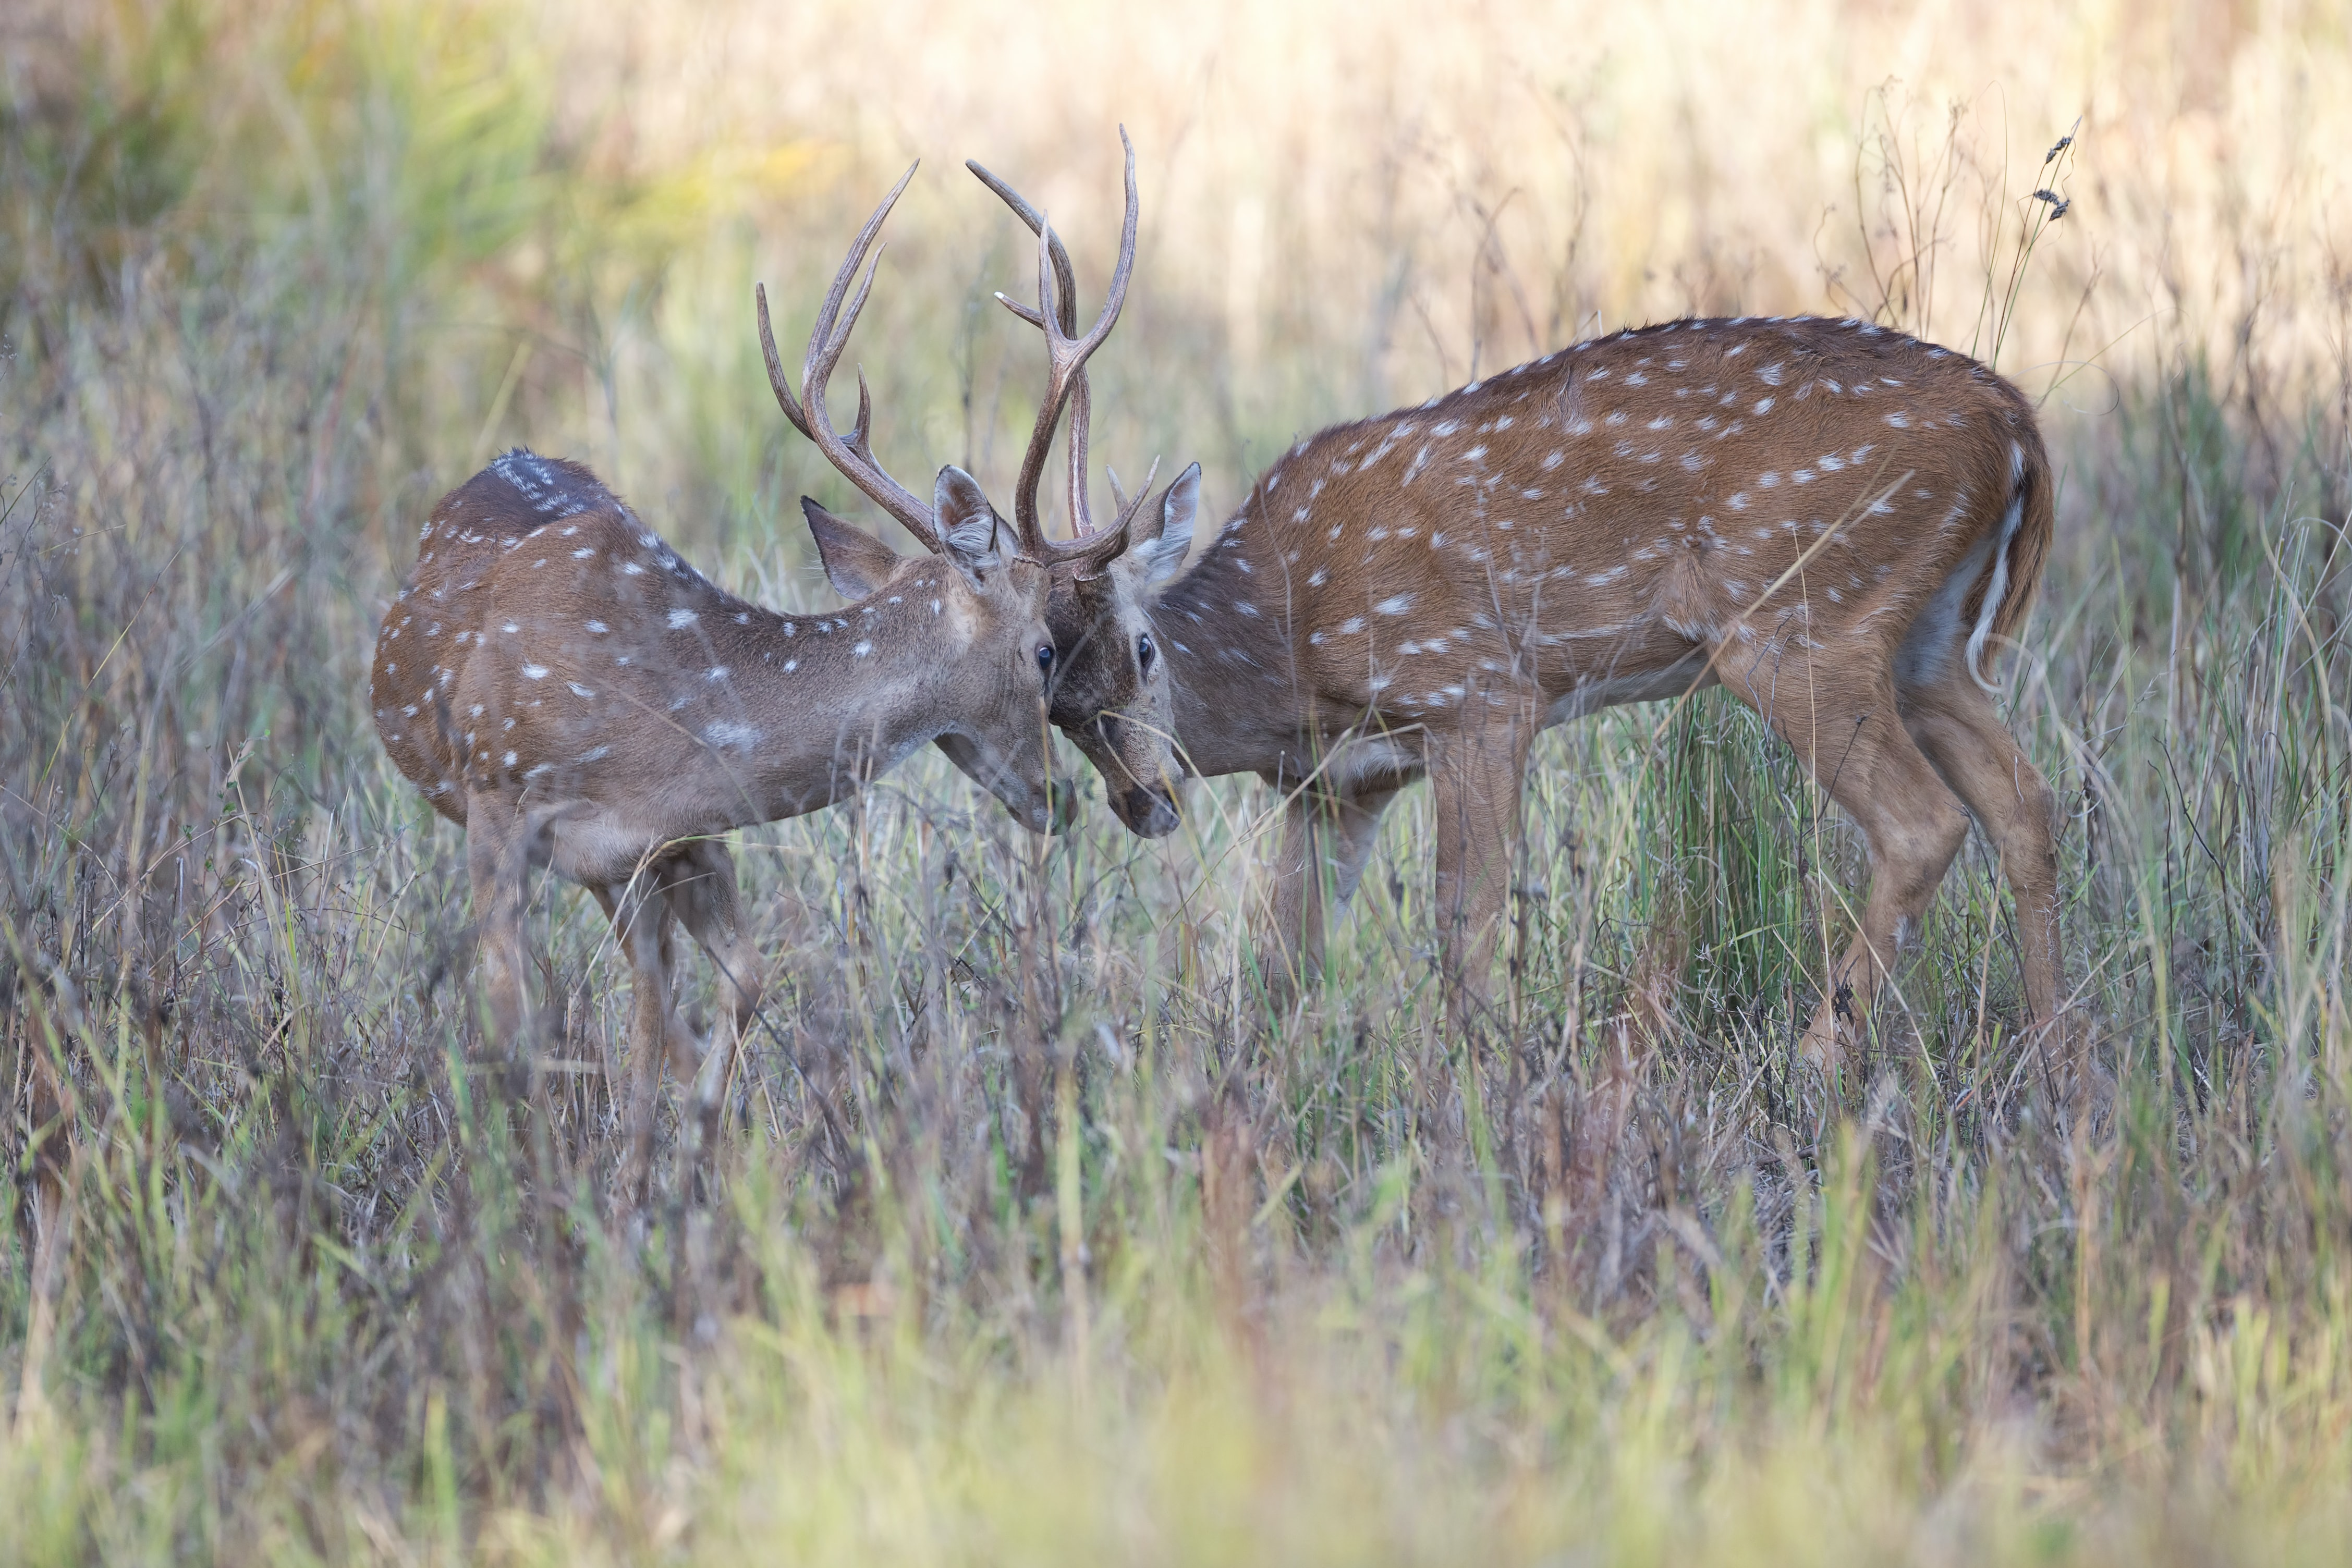 two stags clashing horns during daytime